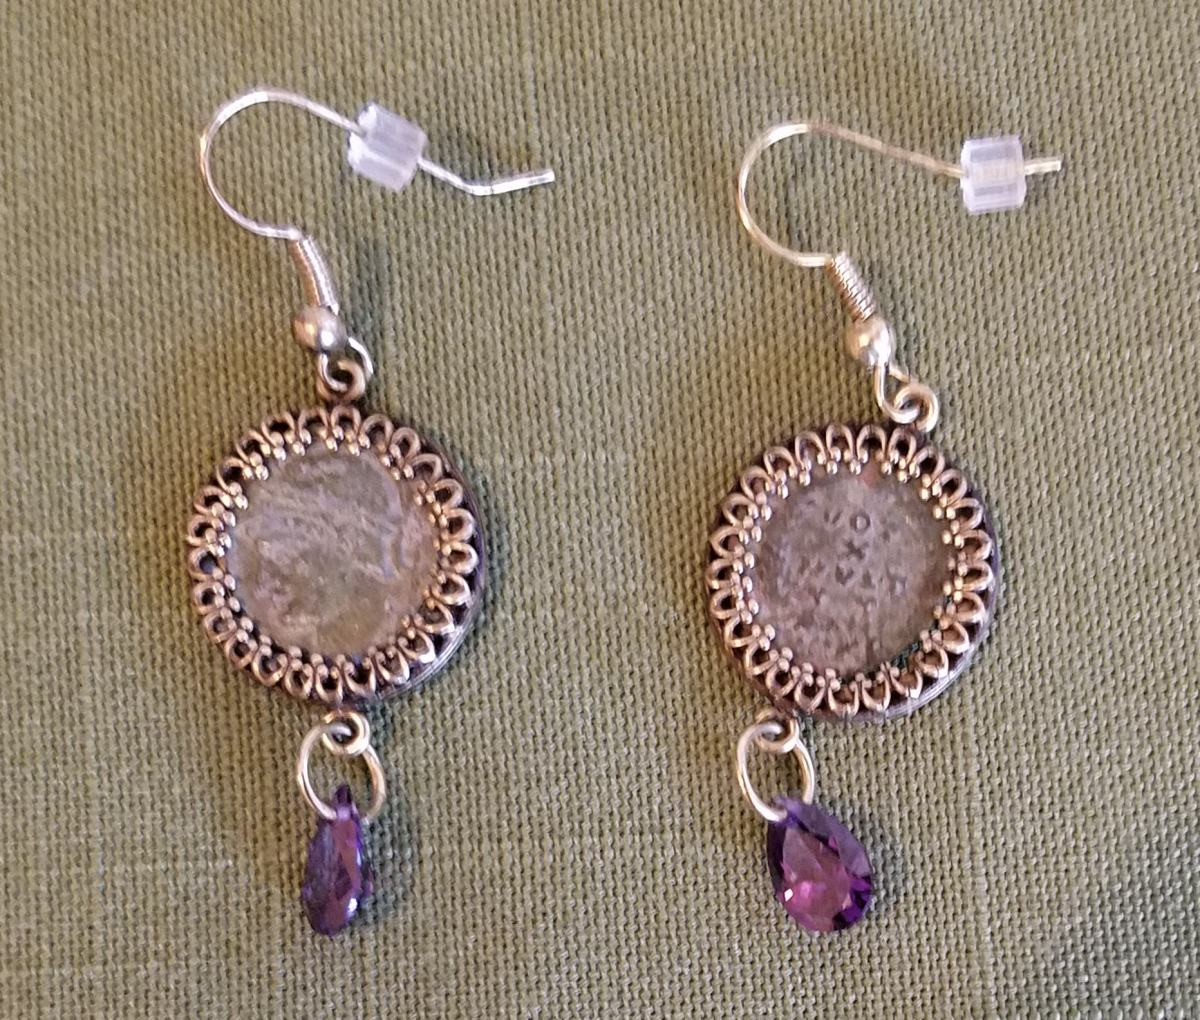 Roman coin earrings with purple drops